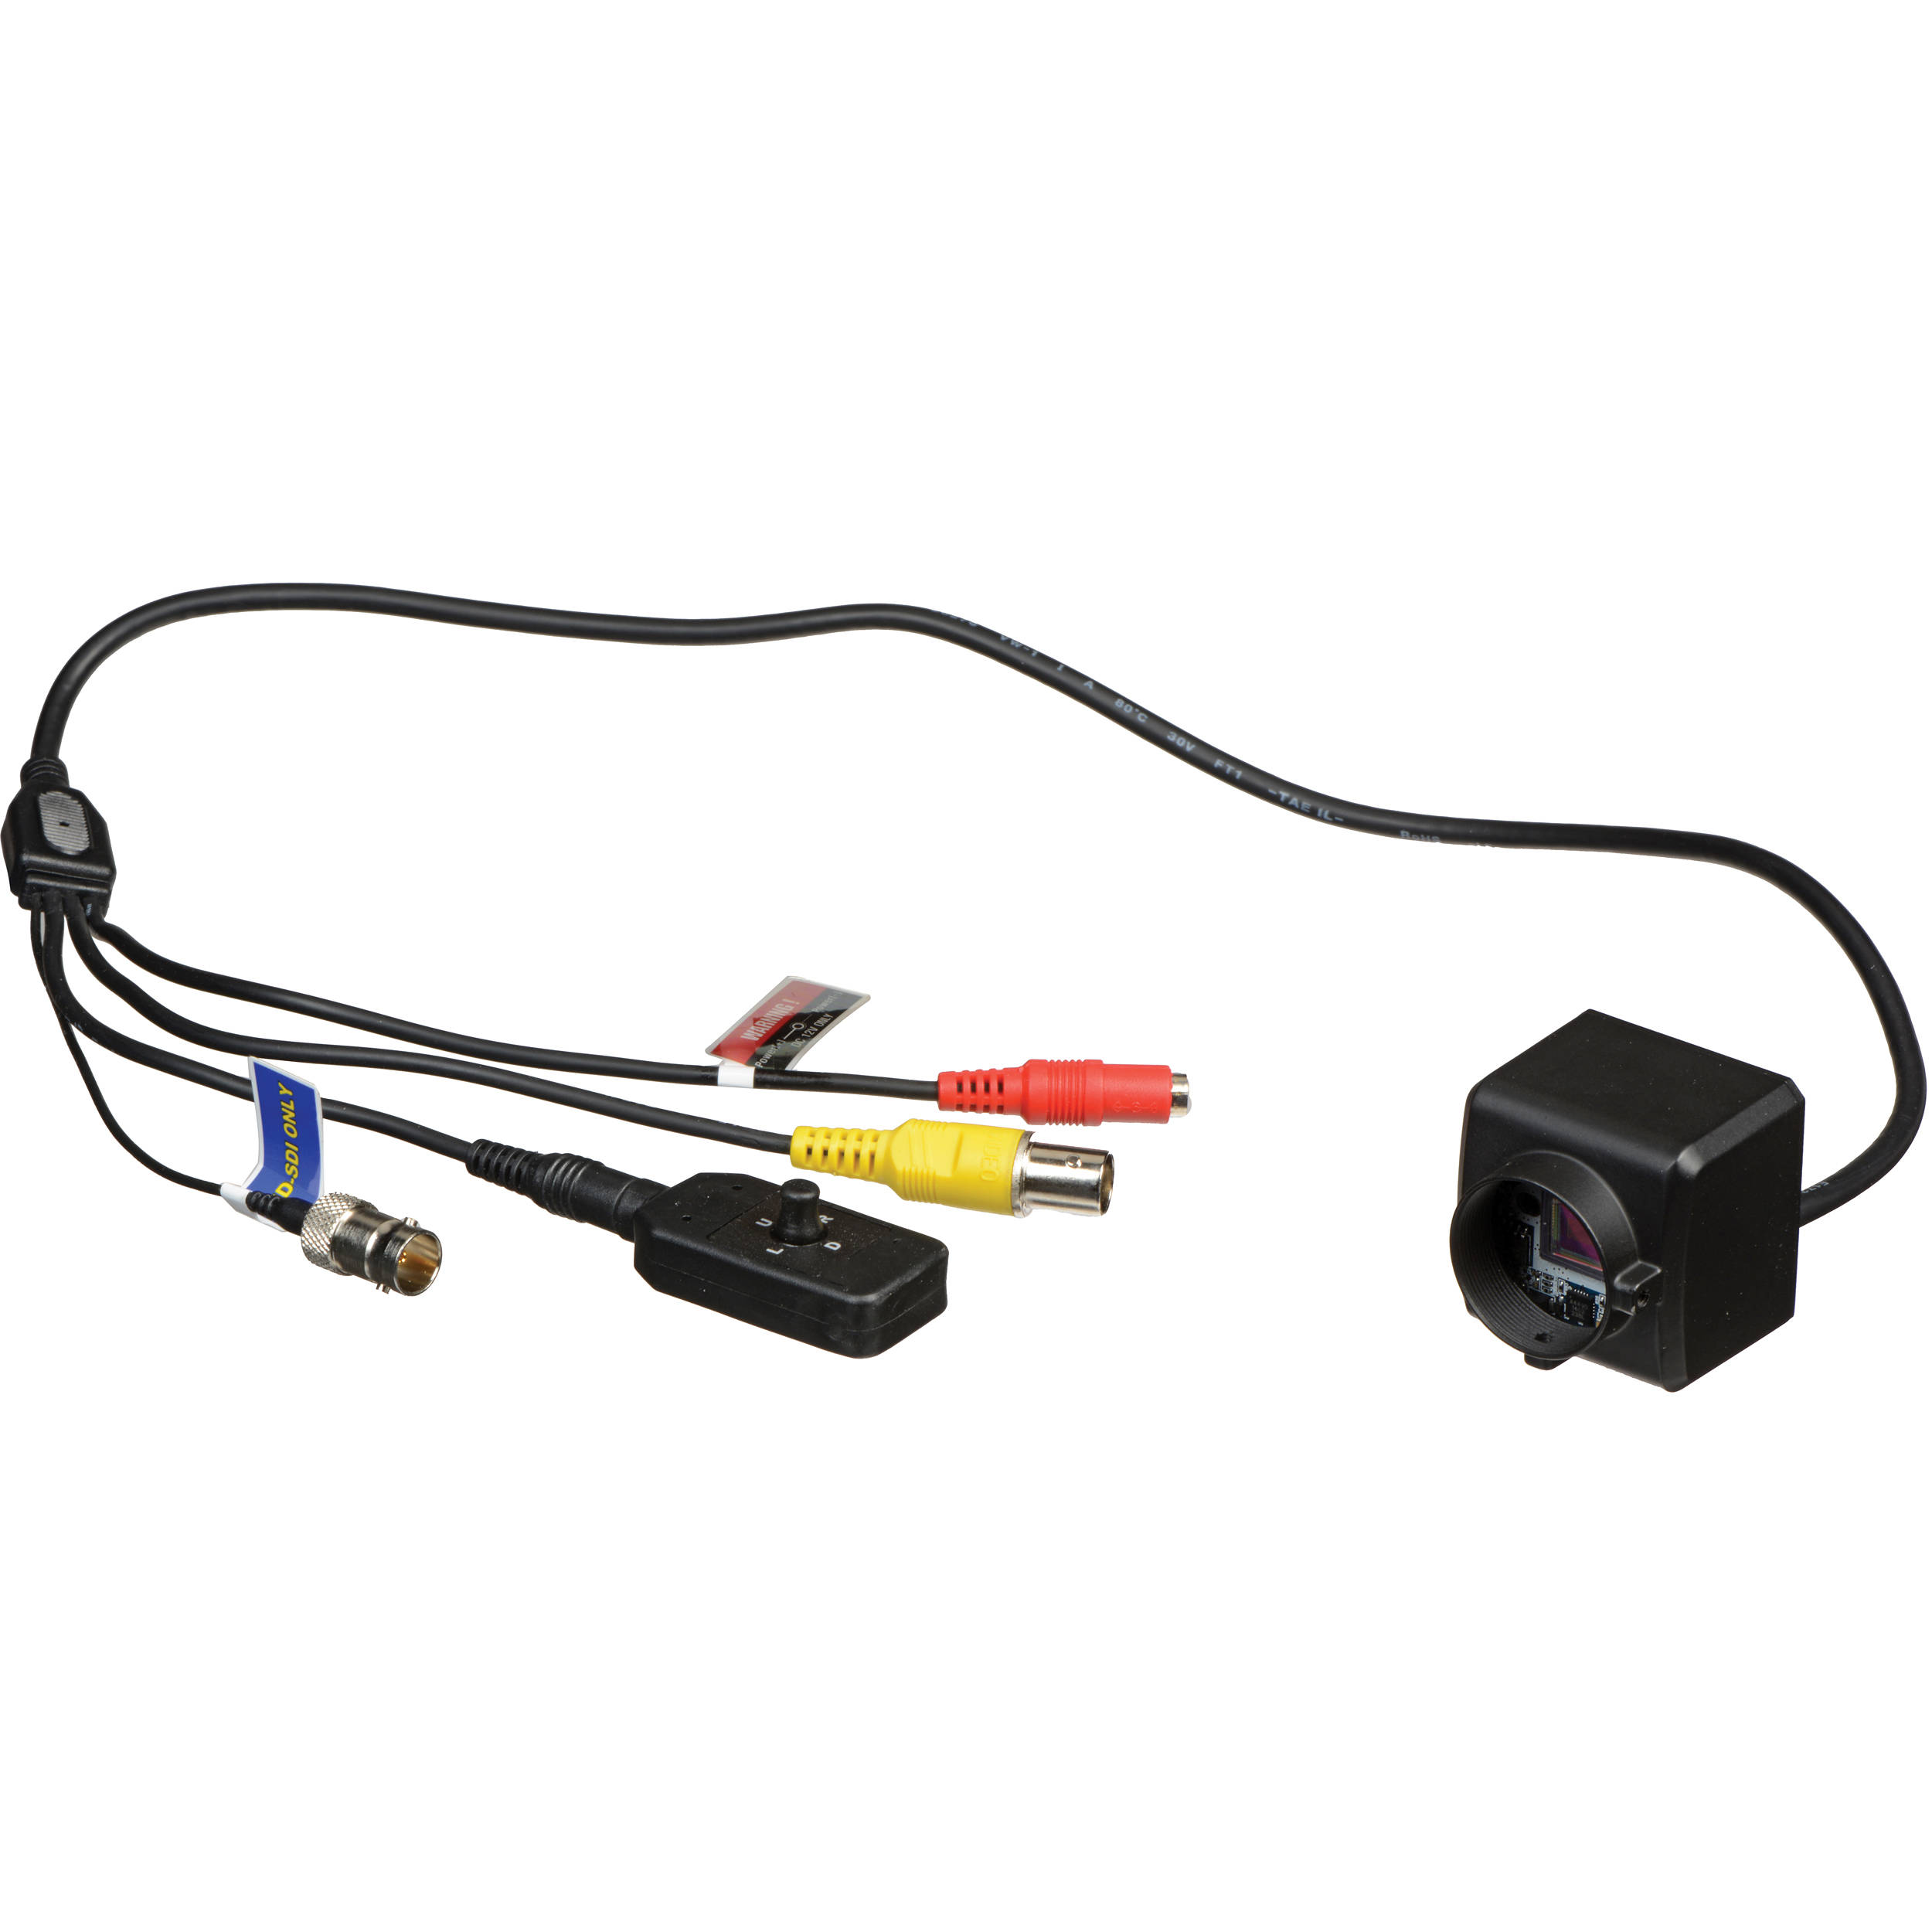 Marshall Electronics 22mp Hd Sdi Mini Camera Cv550 Cs Bh Photo With Wiring Wire Color Code Chart Furthermore